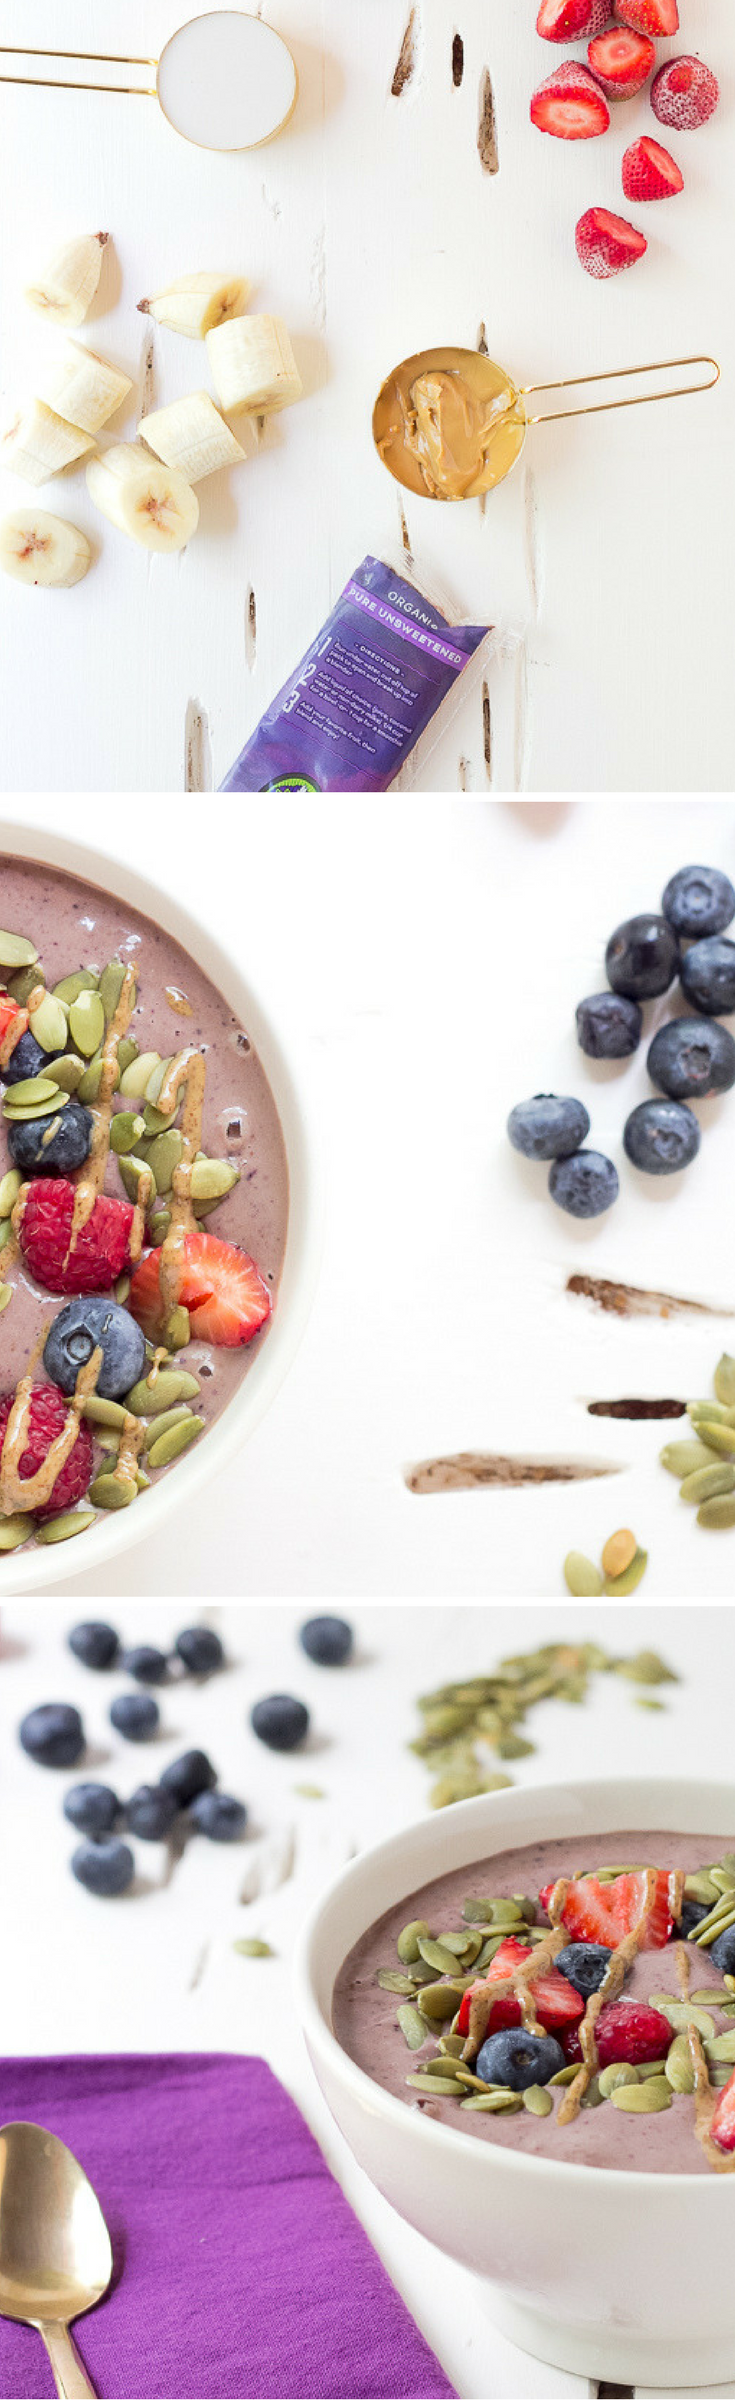 Almond Butter Acai Smoothie Bowl